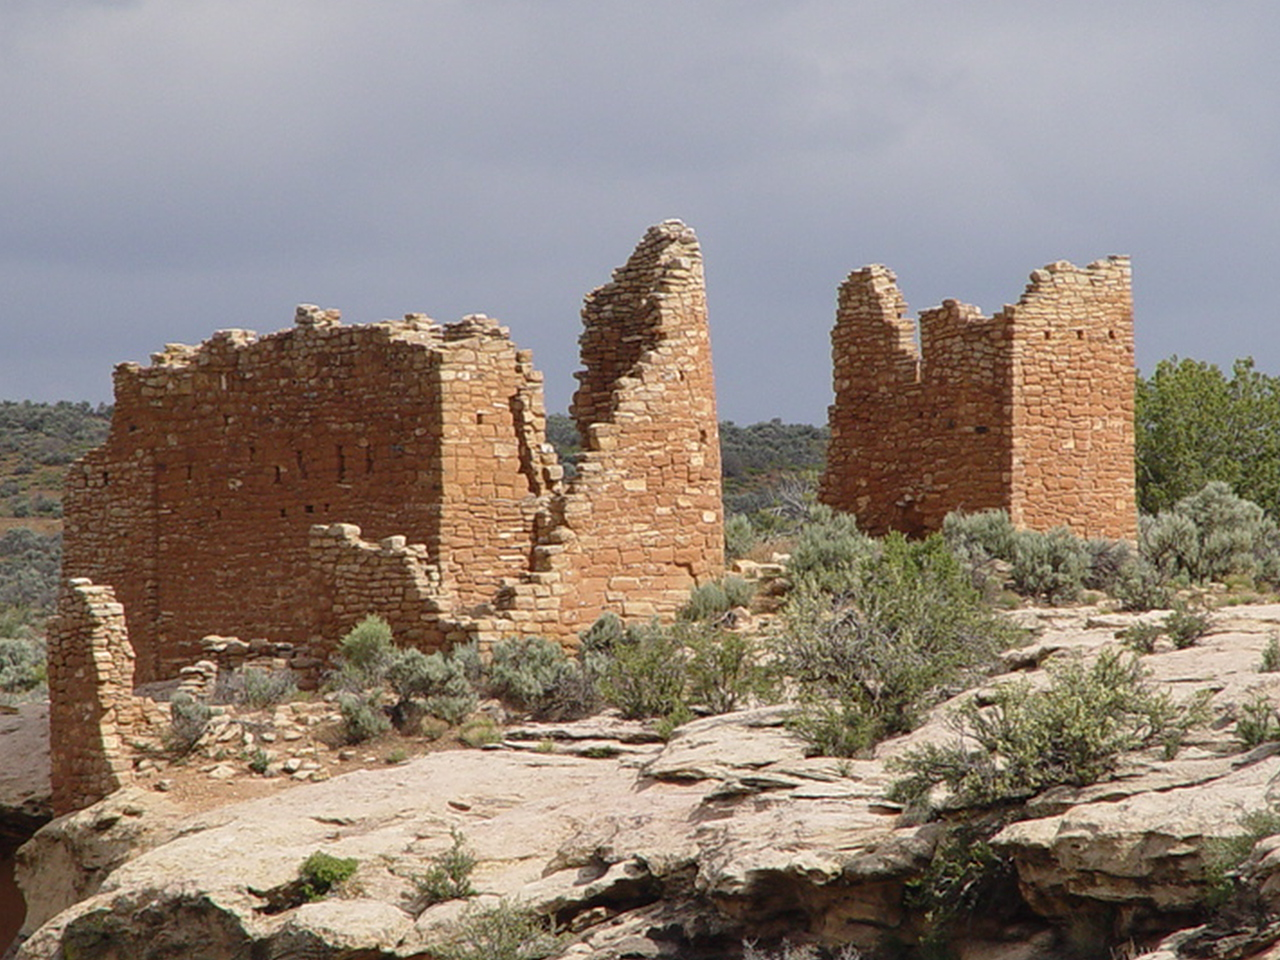 Ancient ruins of Hovenweep Castle, Little Ruin Canyon, Hovenweep National Monument, Utah Click for larger image (http://jamesmcgillis.com)